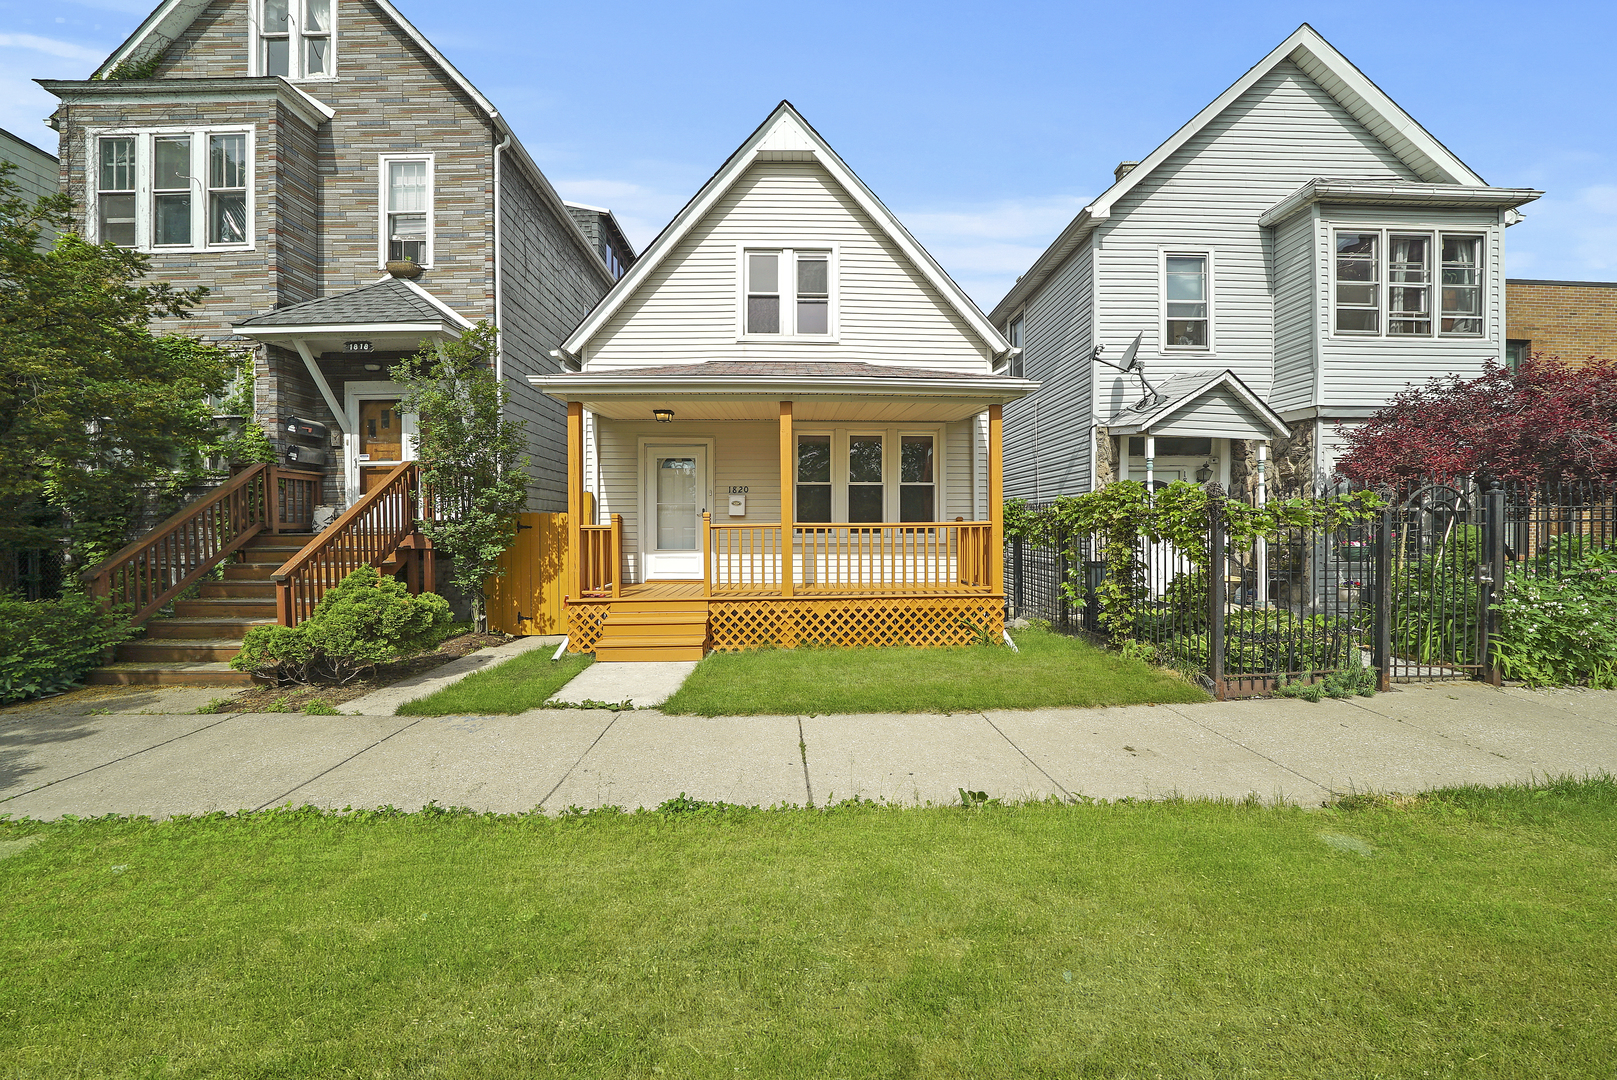 Beautiful updated 3 bedroom 2 bath single family home just half a block away from the 606 in hot Log